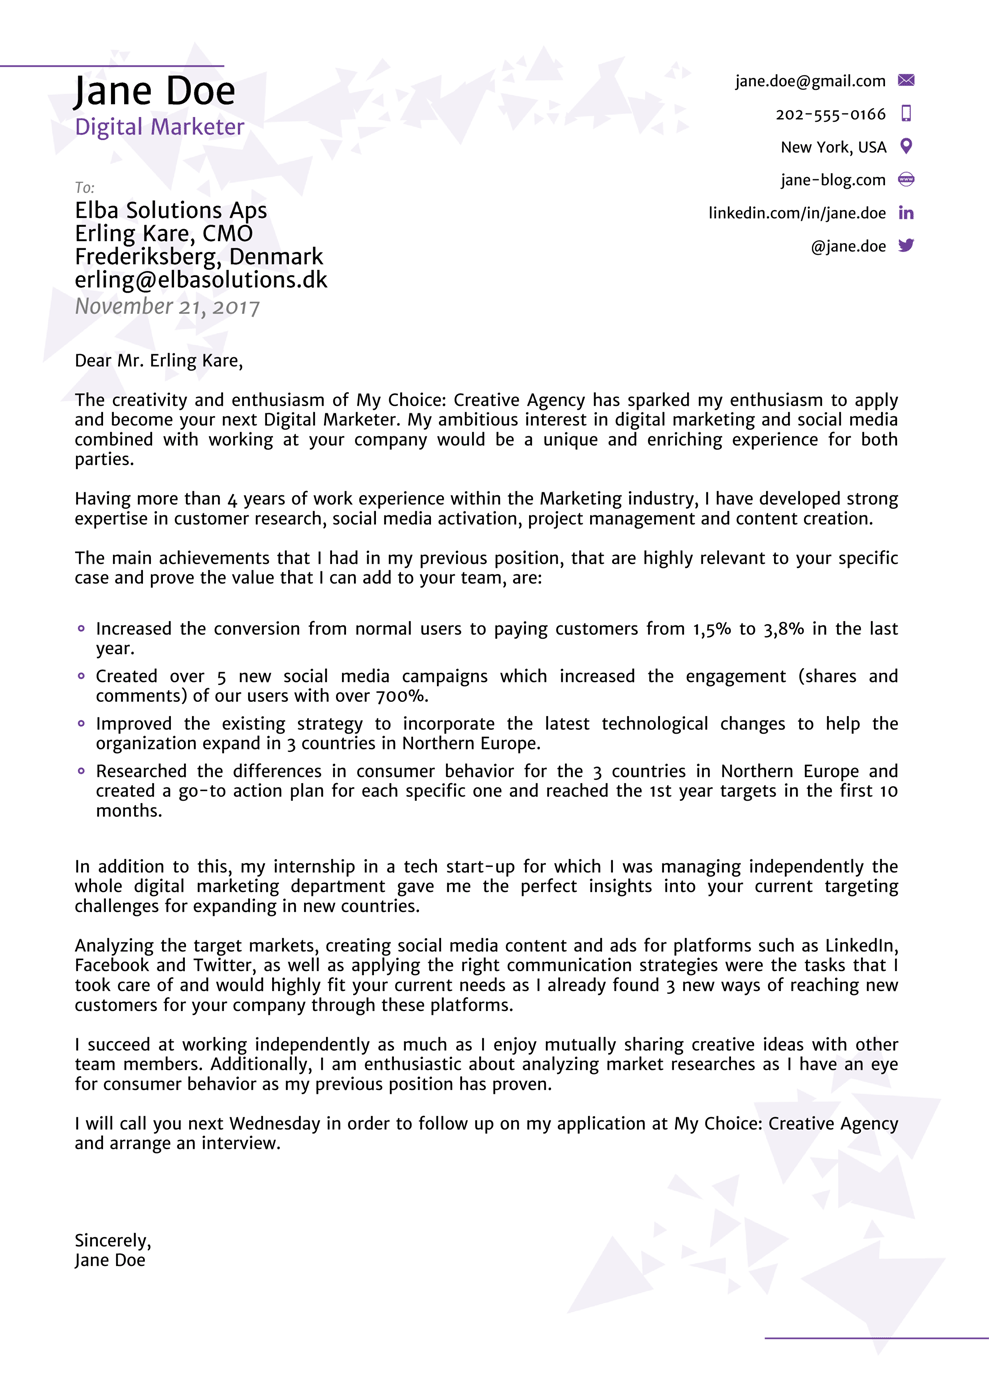 Cover Letter Templates for 2019 Use & Land your Dream